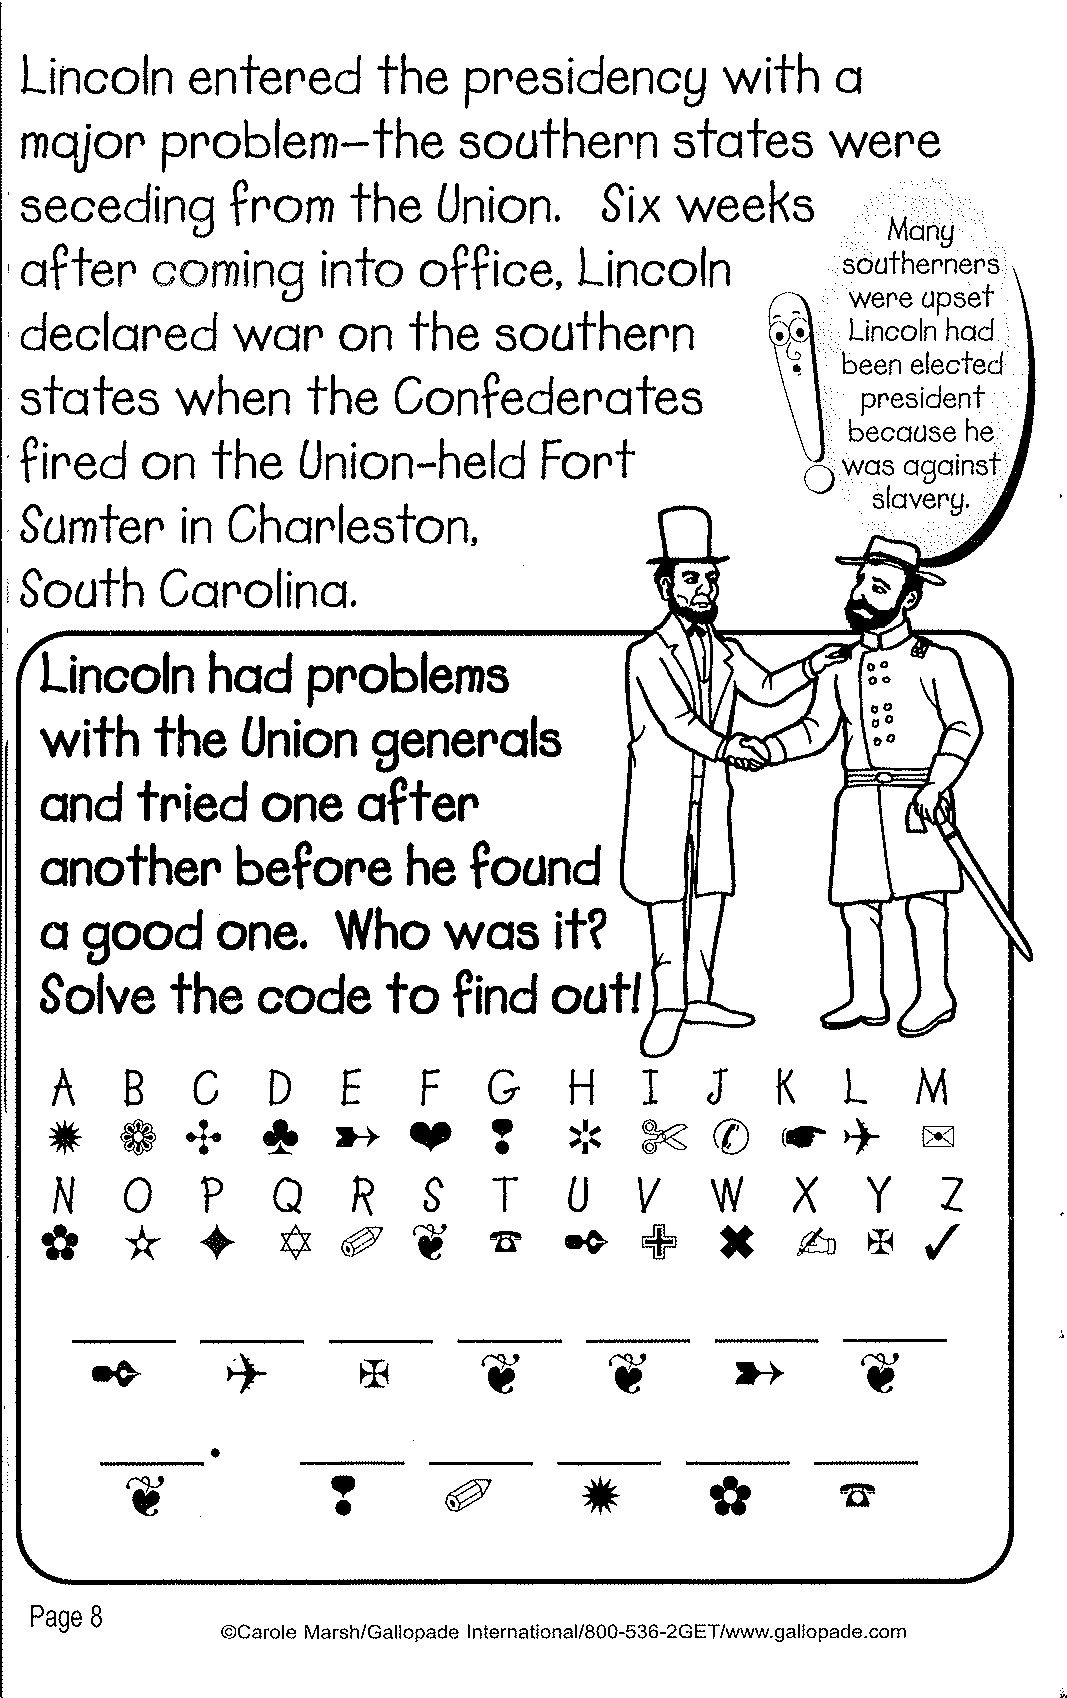 Learn A Bit About Lincoln With This Free Printable